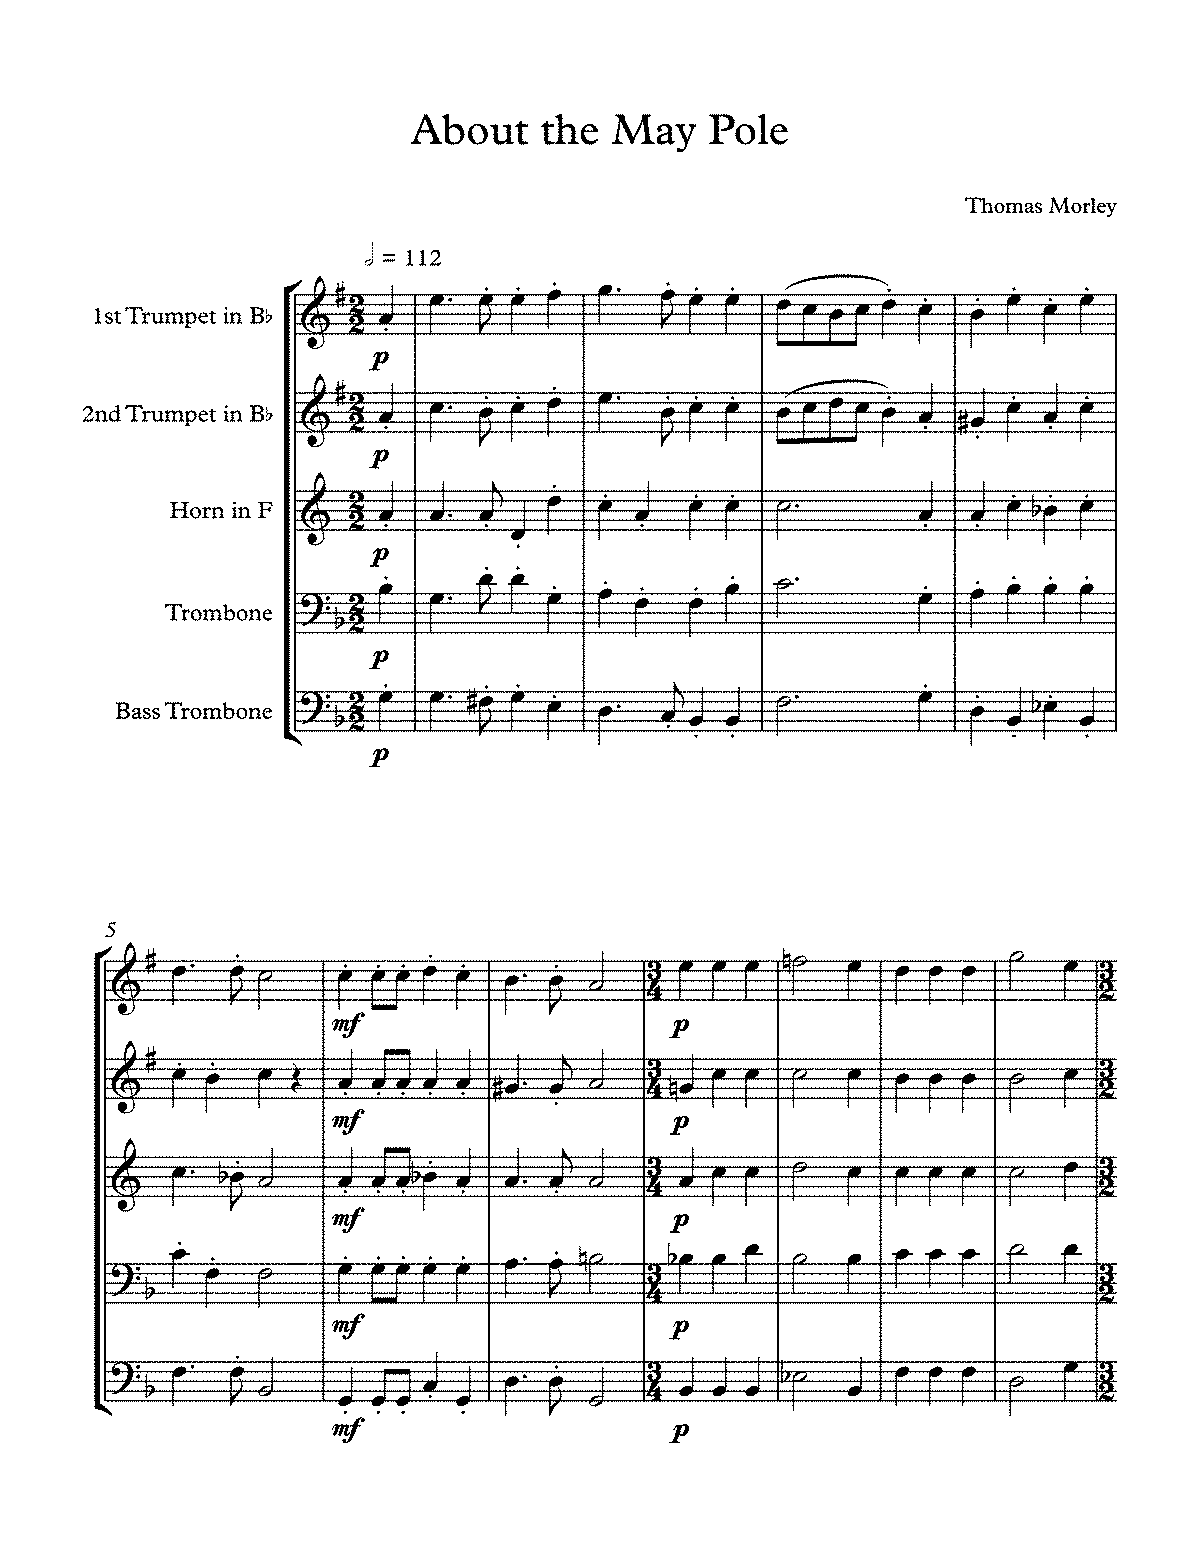 PMLP60454-About the May Pole Brass Quintet - Full Score.pdf